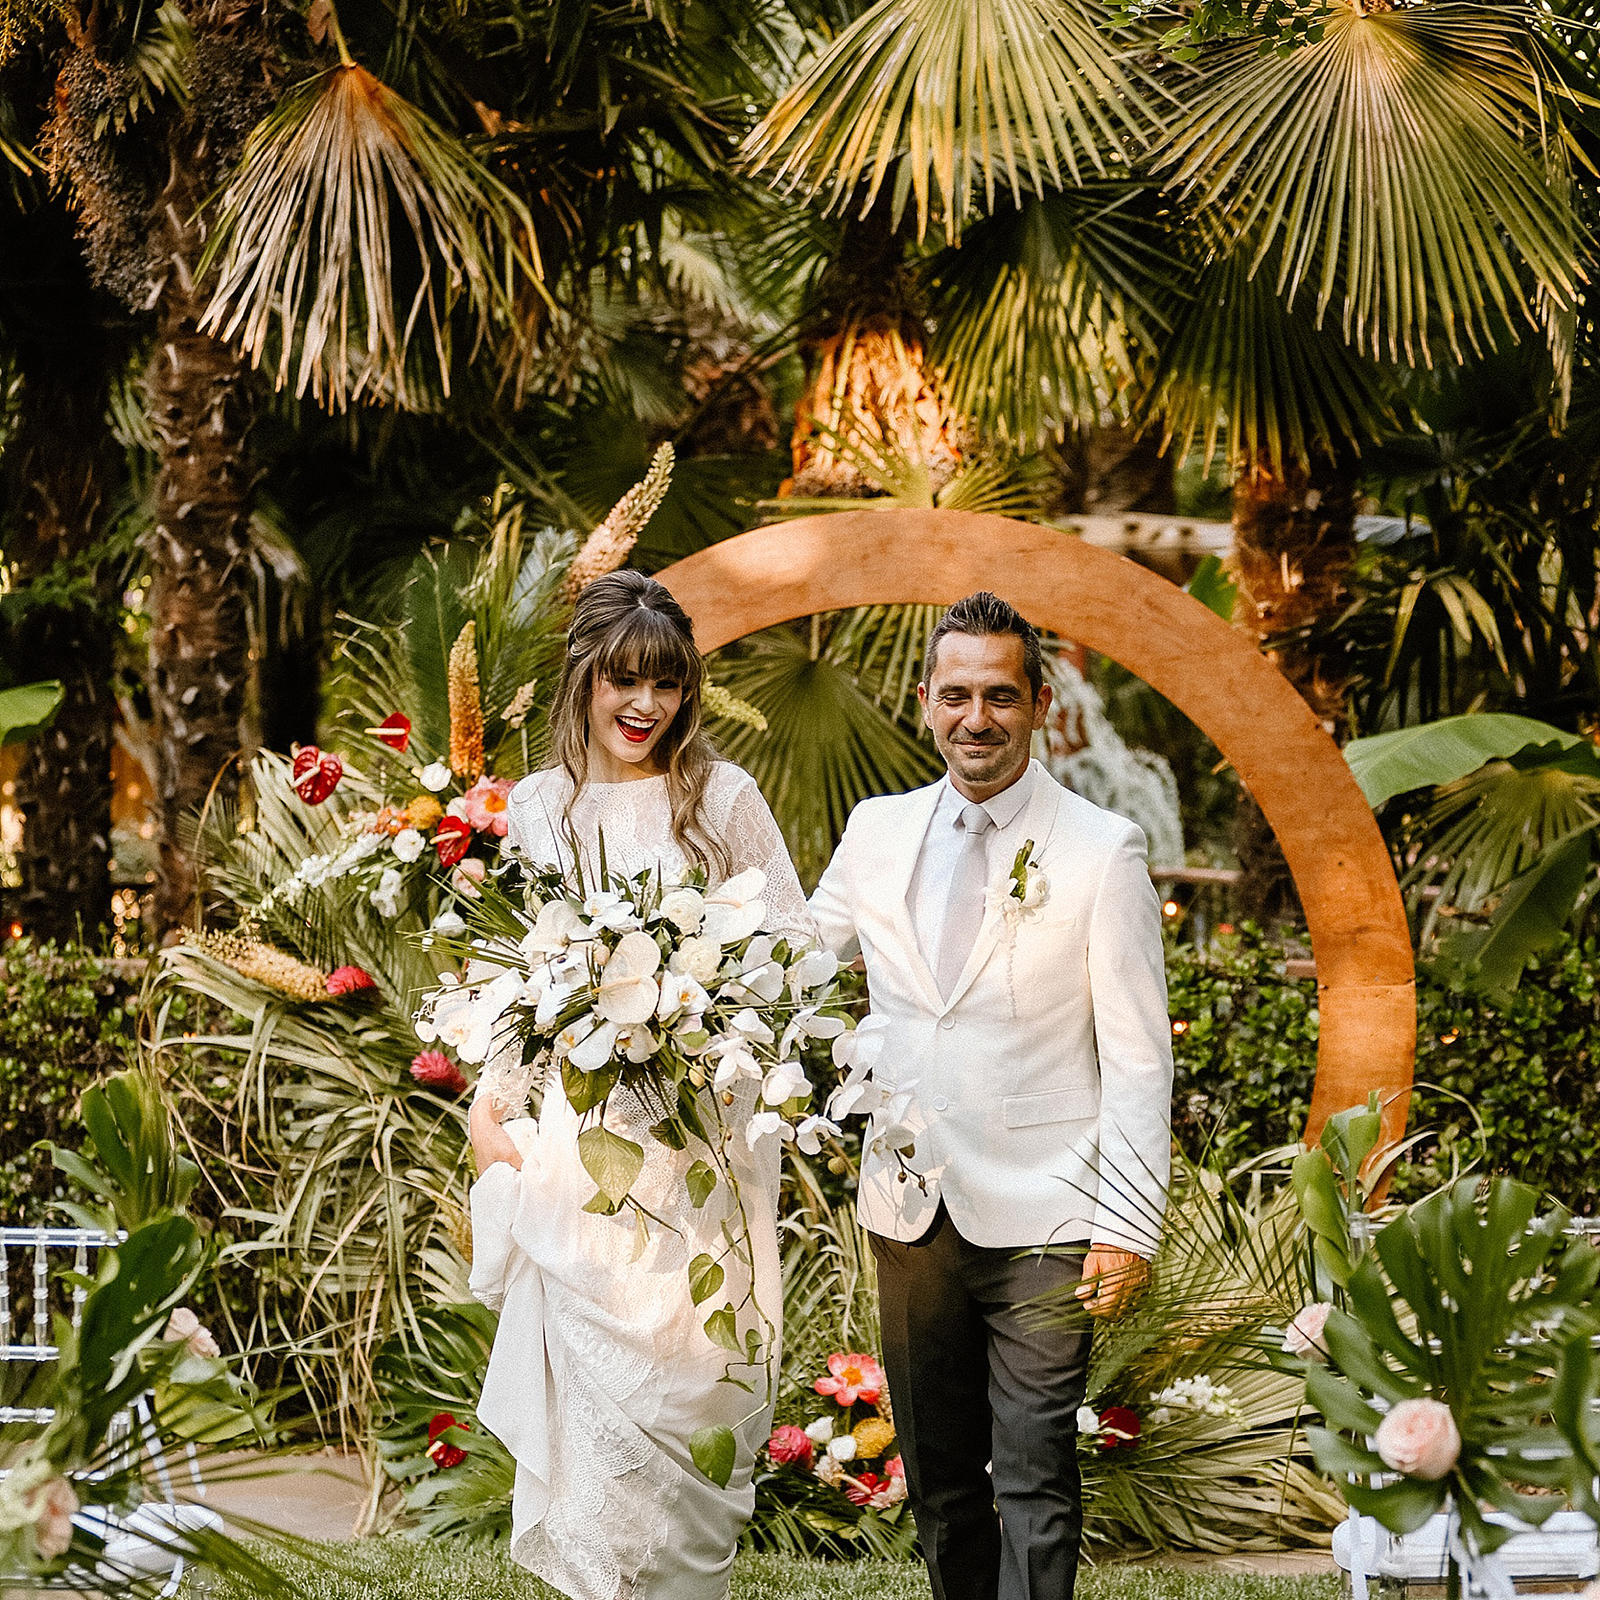 Katelyn-Bradley-Photography-Real-Weddings-Magazine-Sacramento-Tahoe-Chico-To-Have-and-To-Hold-Layout-FEATURED